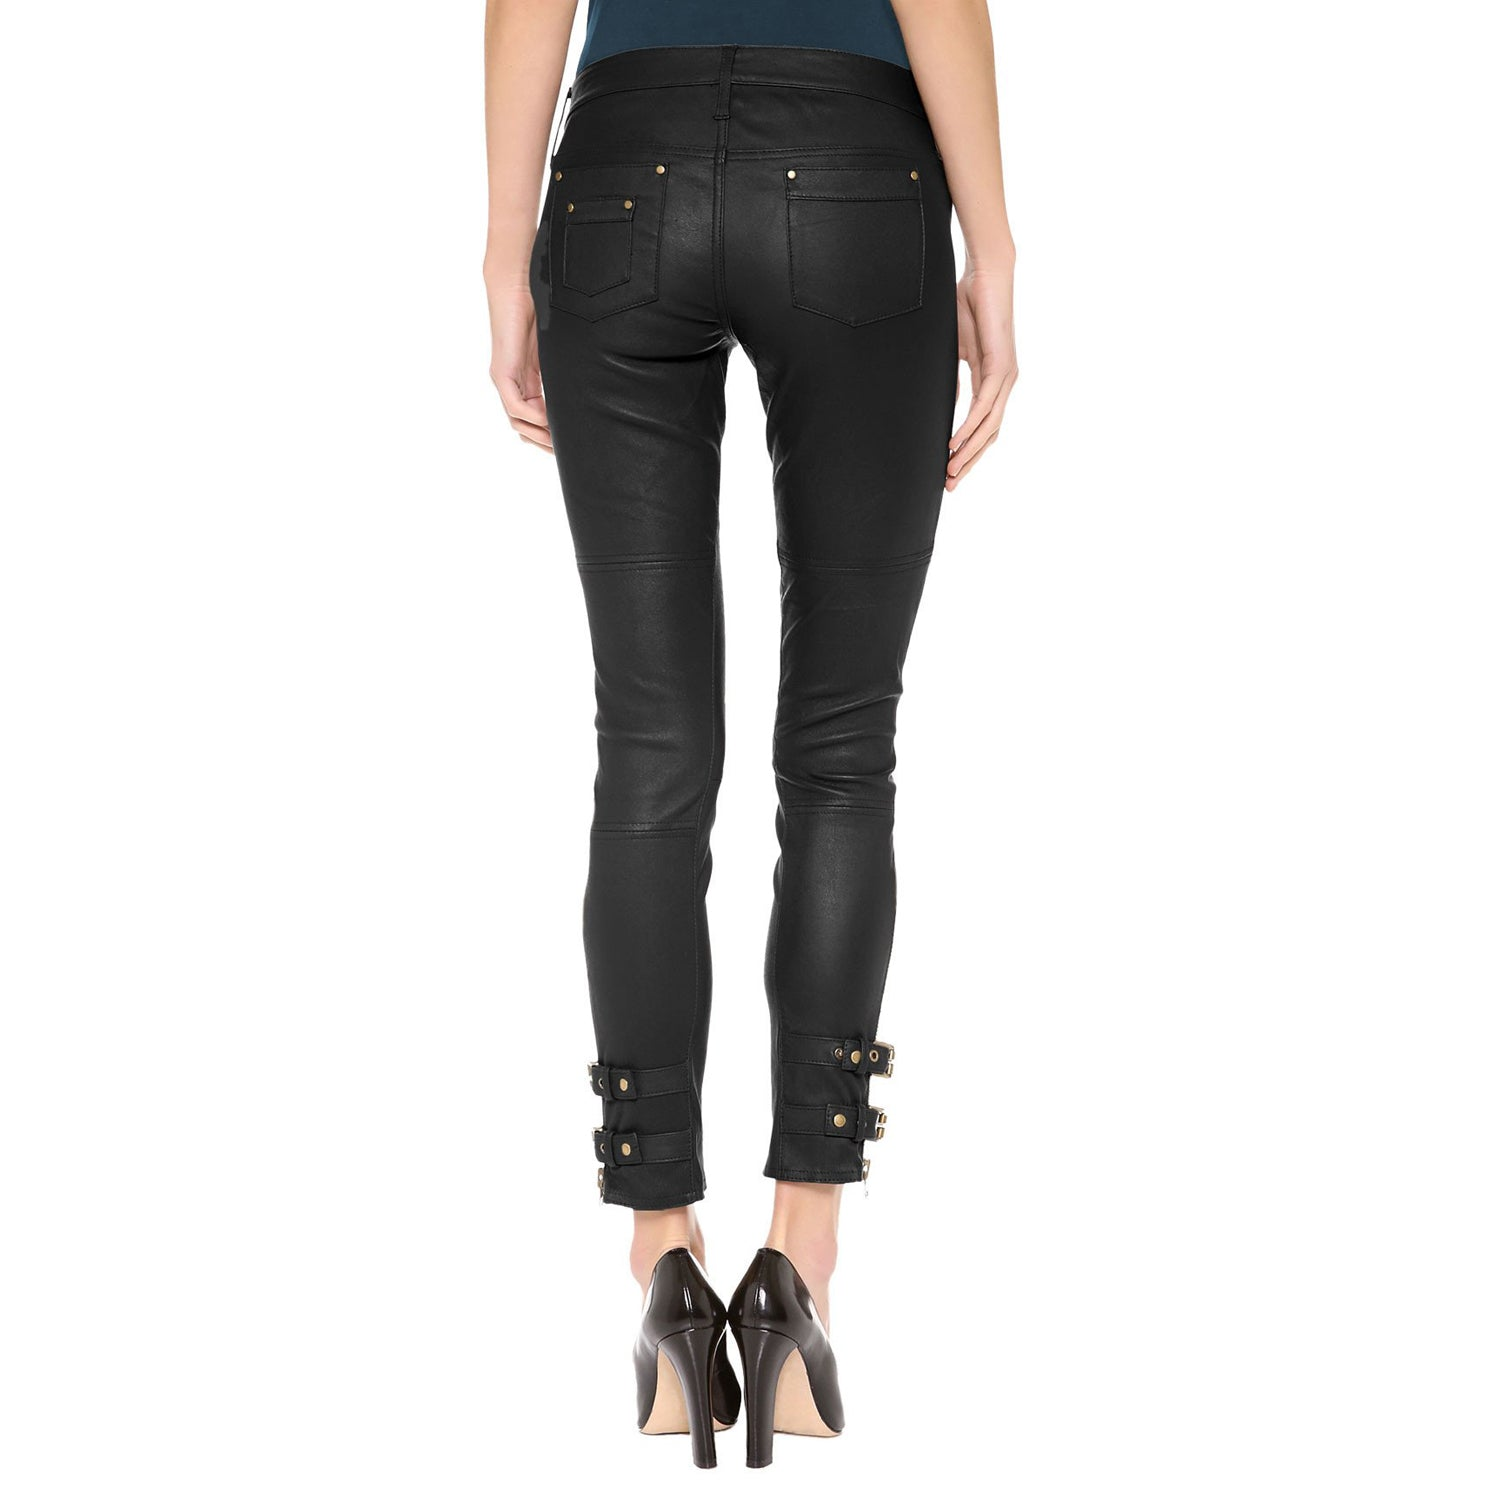 Leather pants (style #1) - Lusso Leather - 2